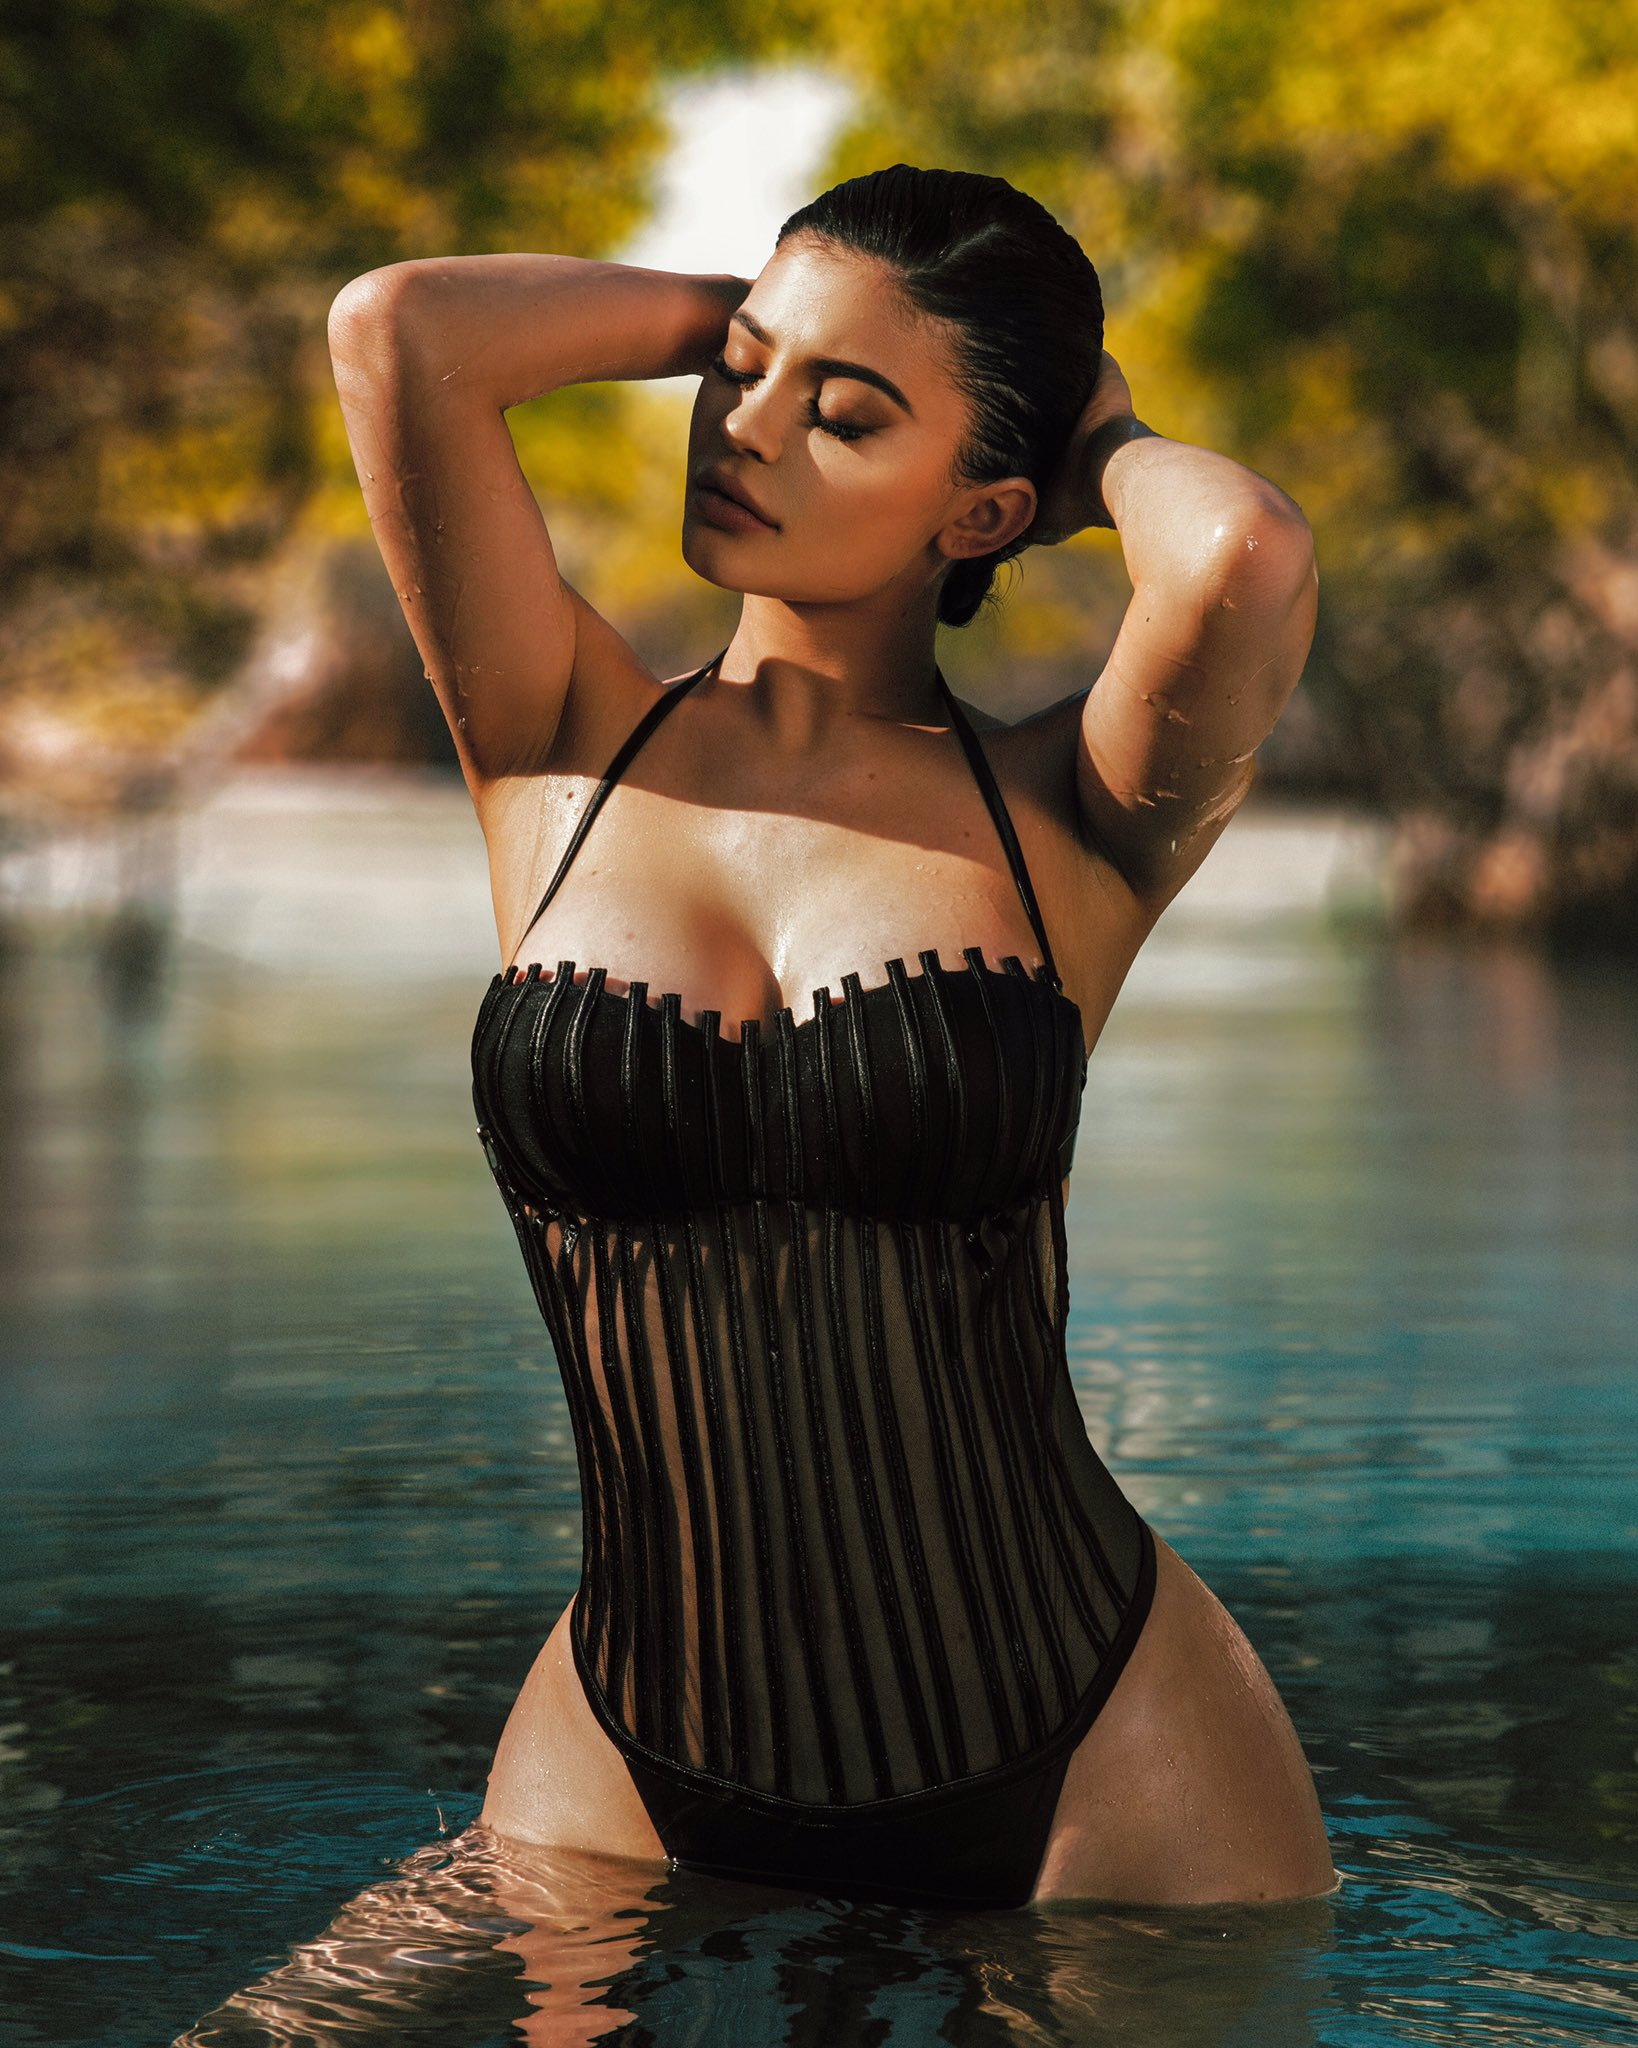 Kylie Jenner sexy lady pic